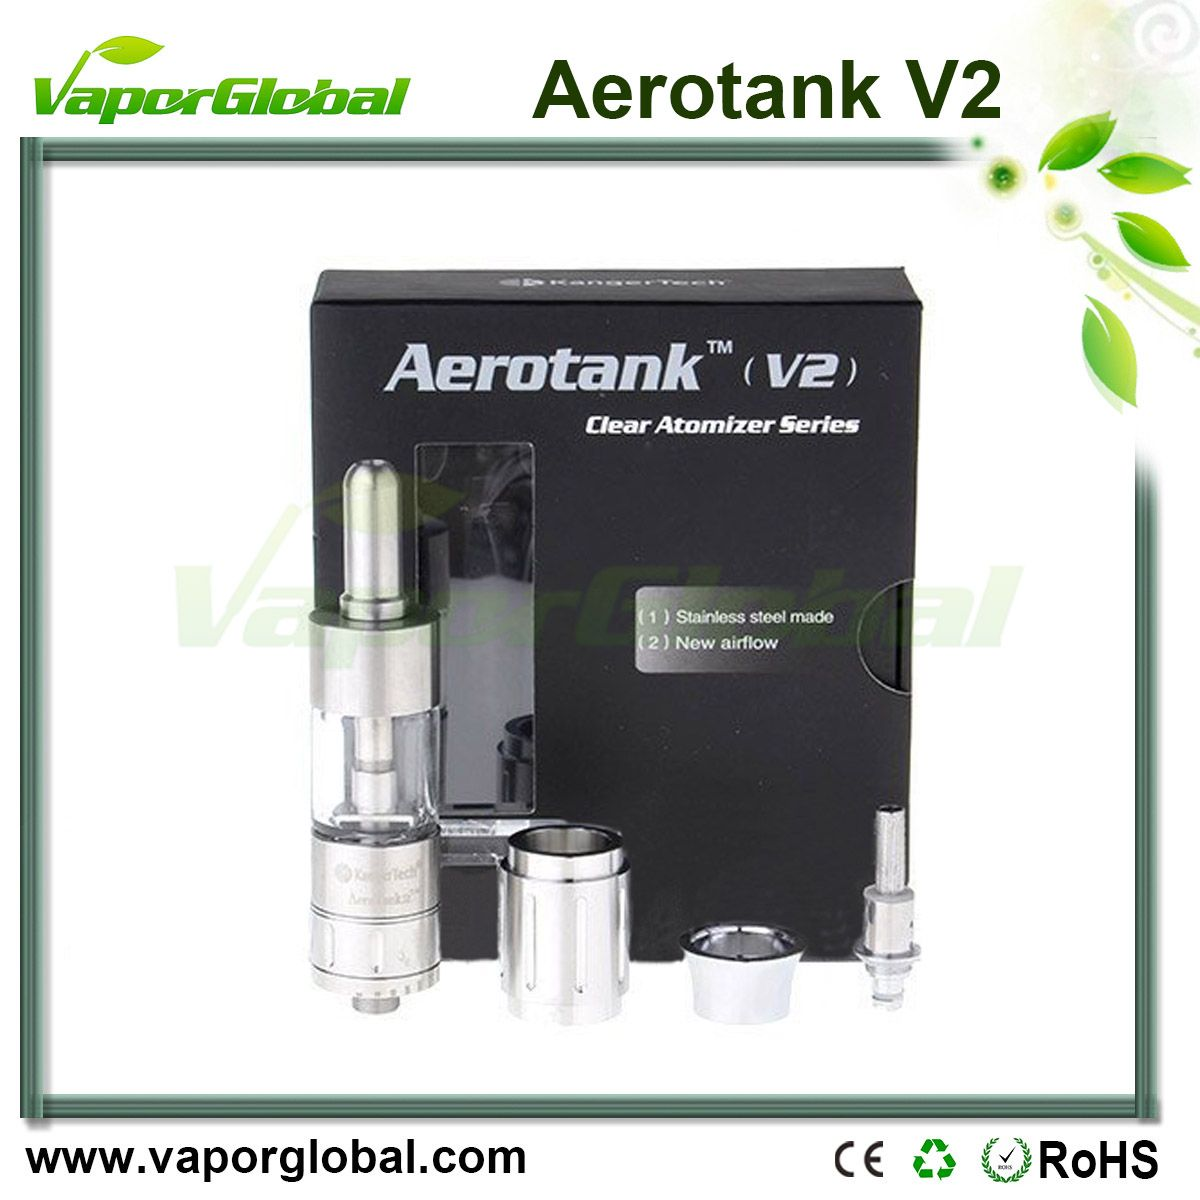 1:1 Clone Aerotank V2 BCC Clearomizer The Aerotank v2 offers the same great features and performance as the Aerotank but with a redesigned airflow valve. Turn the dial on the base to increase or decrease airflow to your preference. It also comes with a stainless steel replacement tube if glass isn't your thing. In this version the atomizer heads have also been redesigned with the wicks hidden to further prevent leakage.